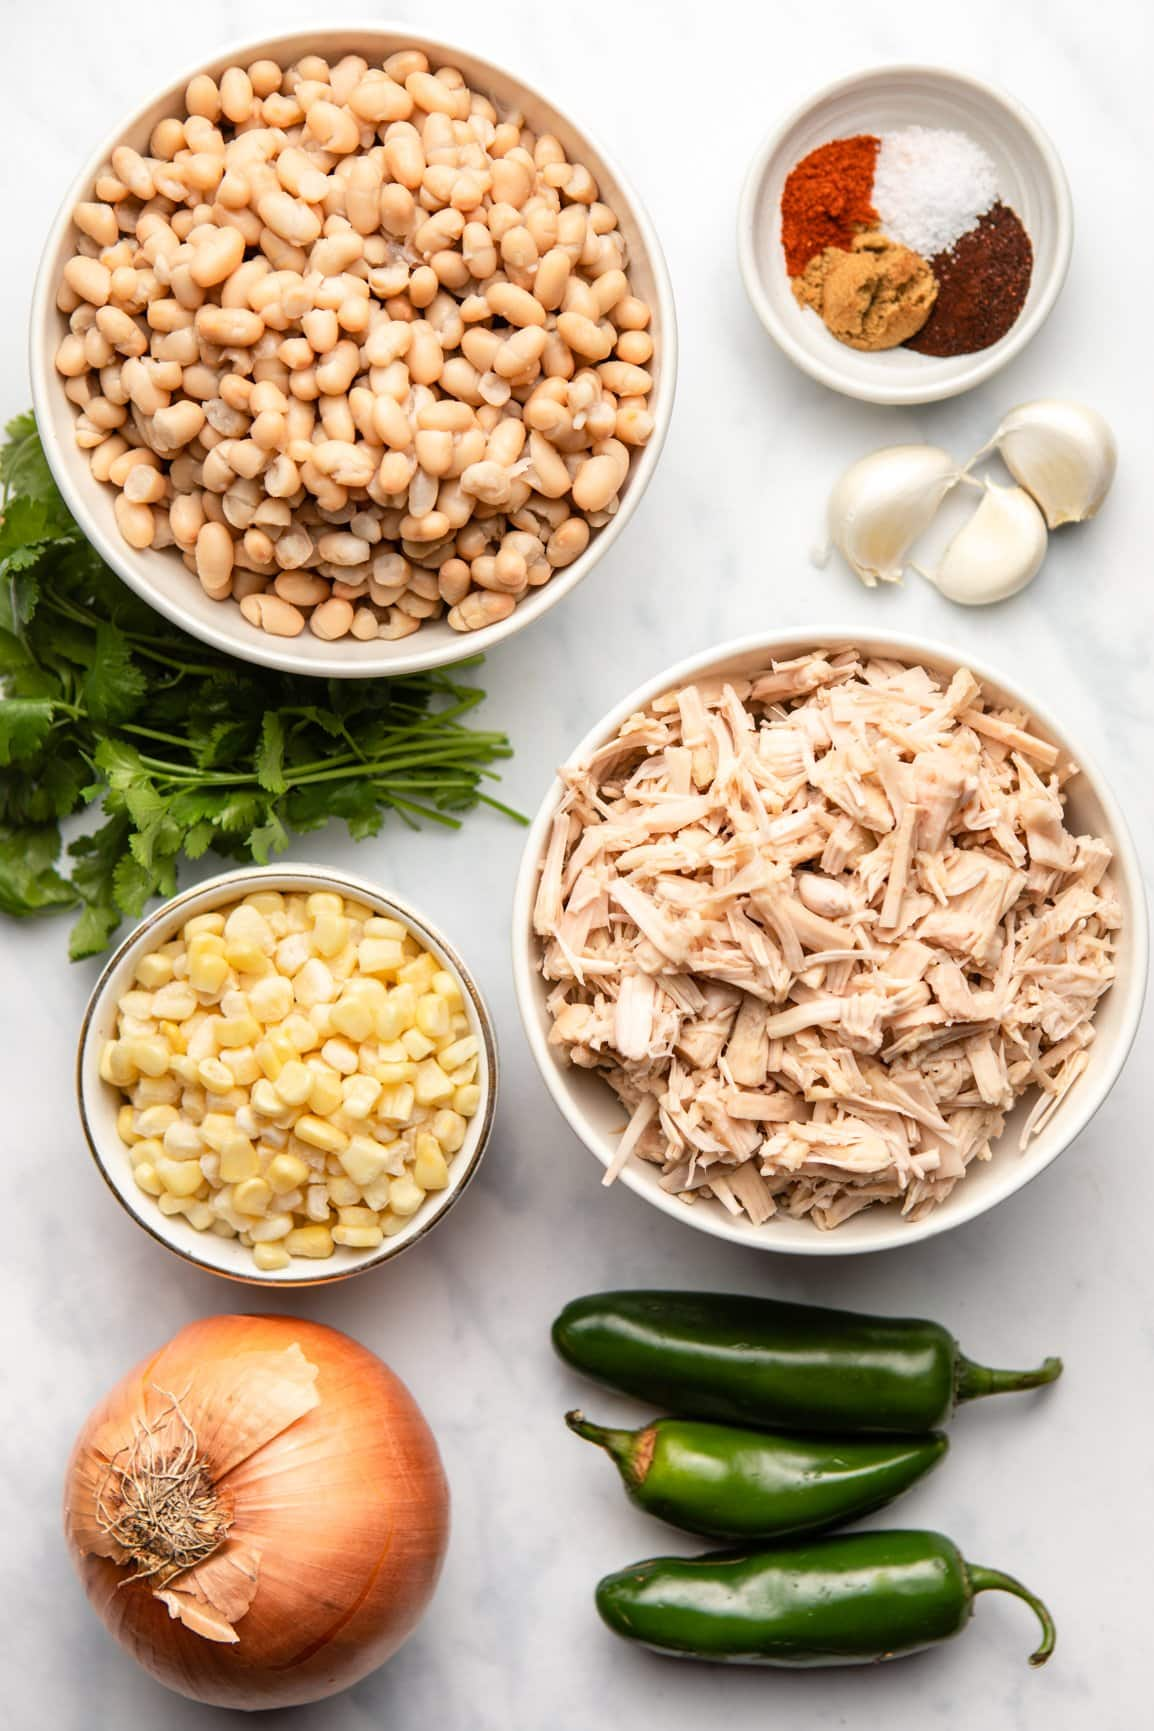 ingredients for vegan white bean chili in small bowls on marble background